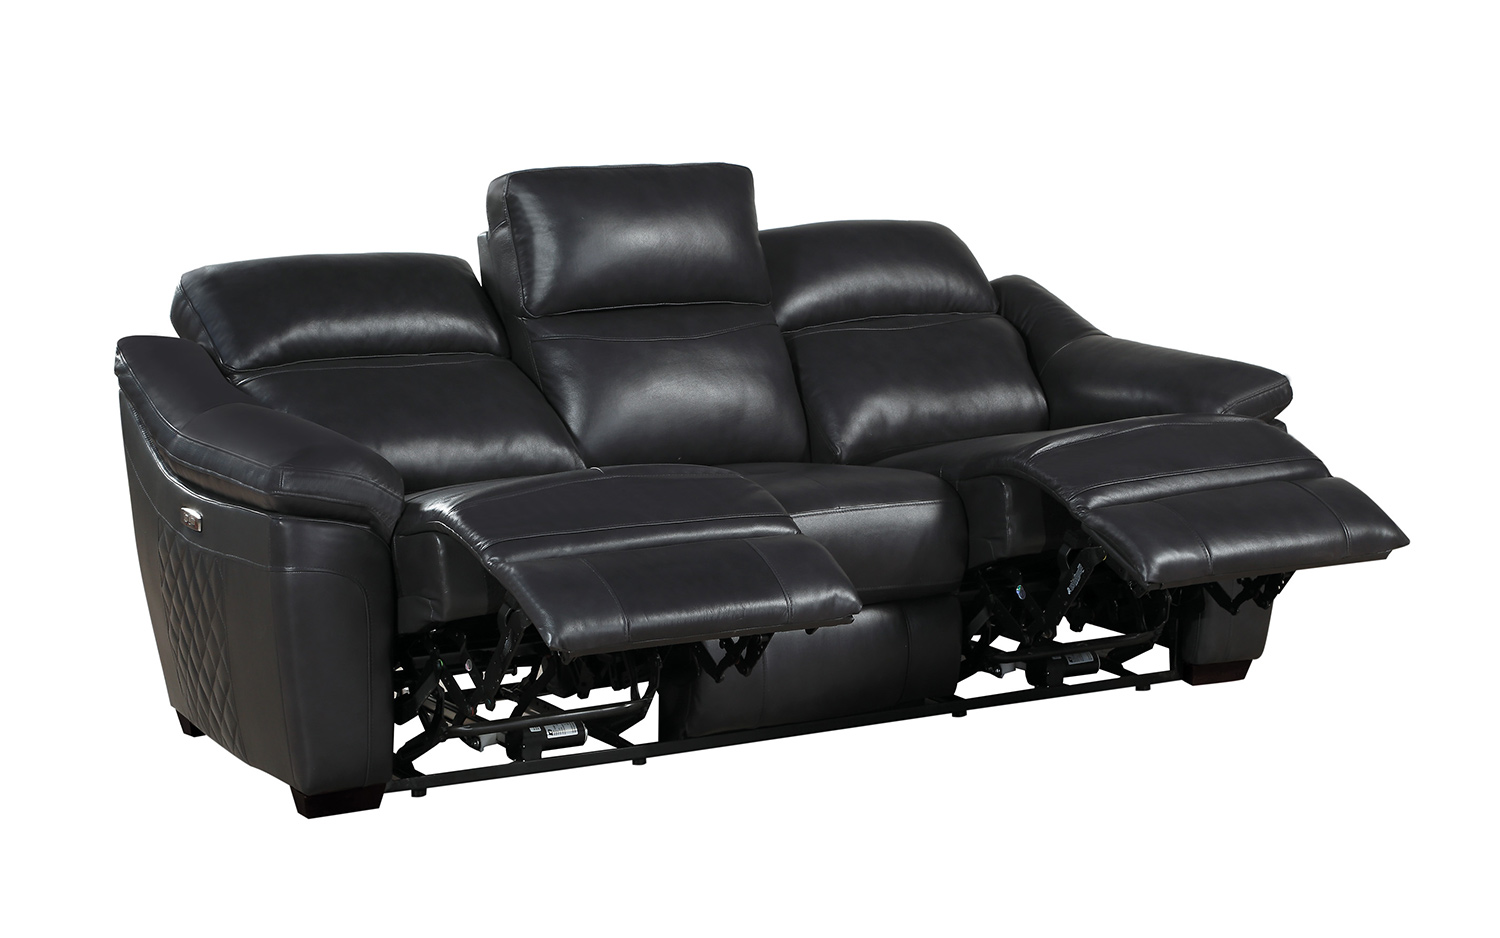 Homelegance Renzo Power Double Reclining Sofa - Dark Gray